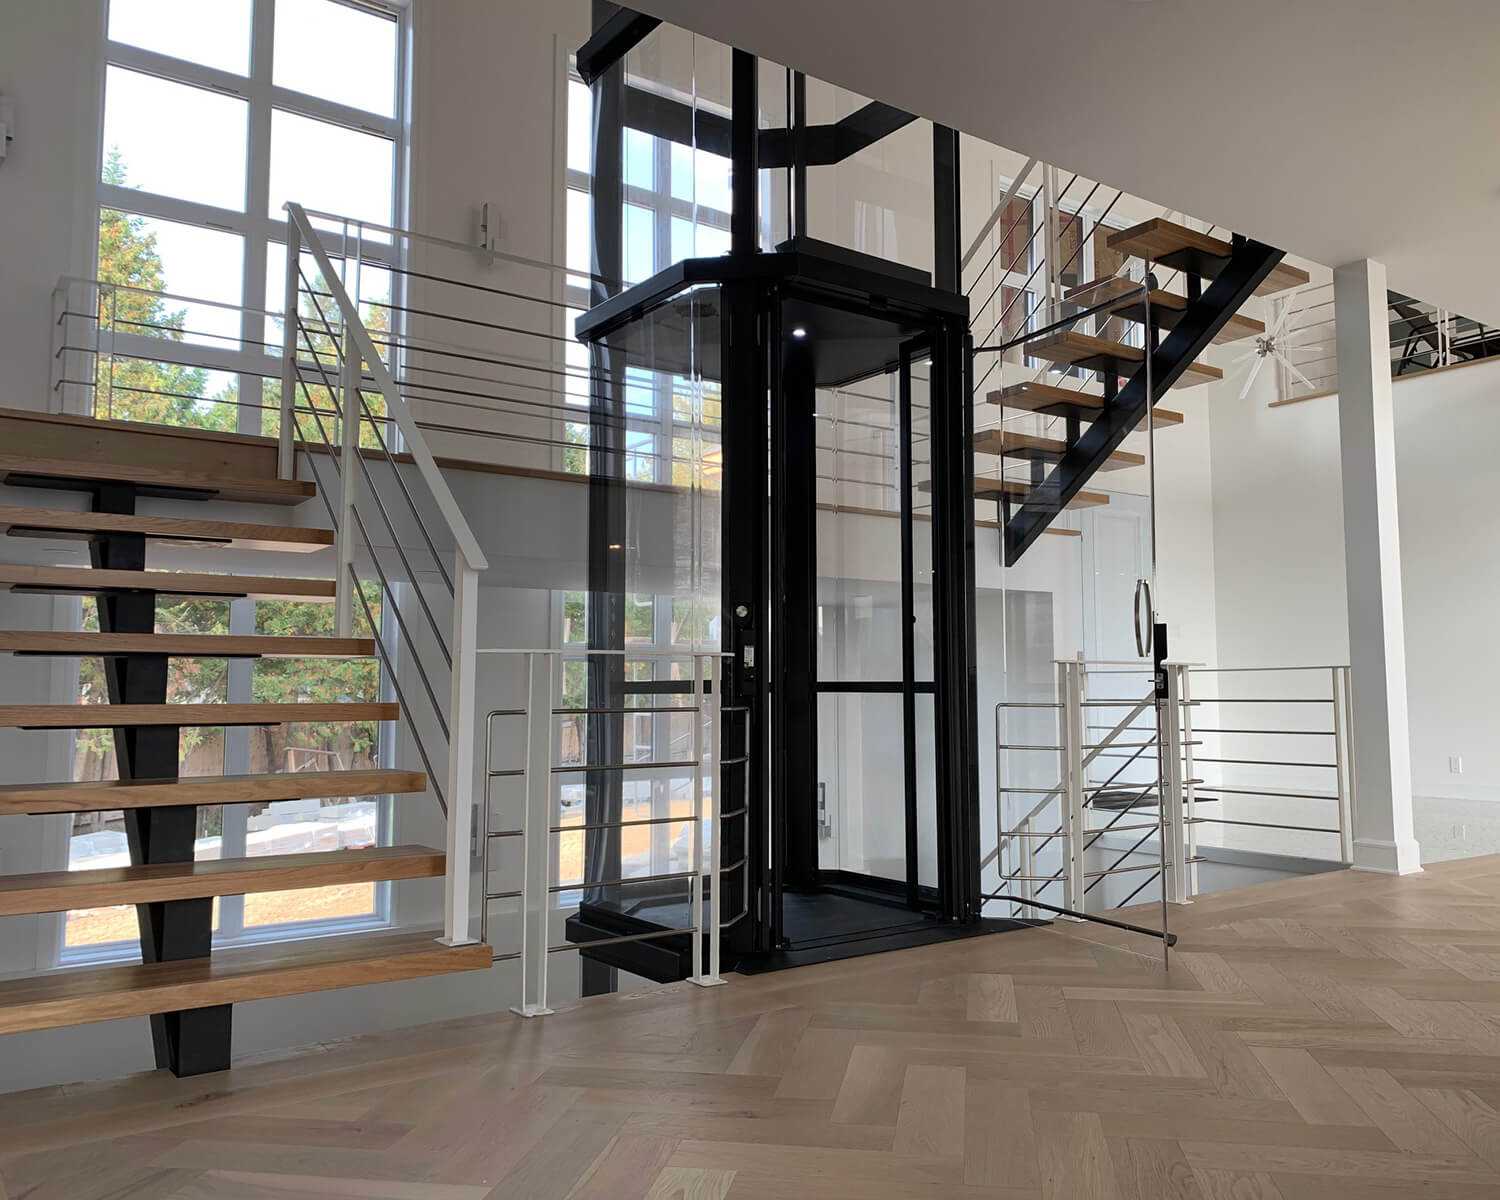 Savaria Octagonal Acrylic Panoramic Home Elevator with black frame between two wooden staircases